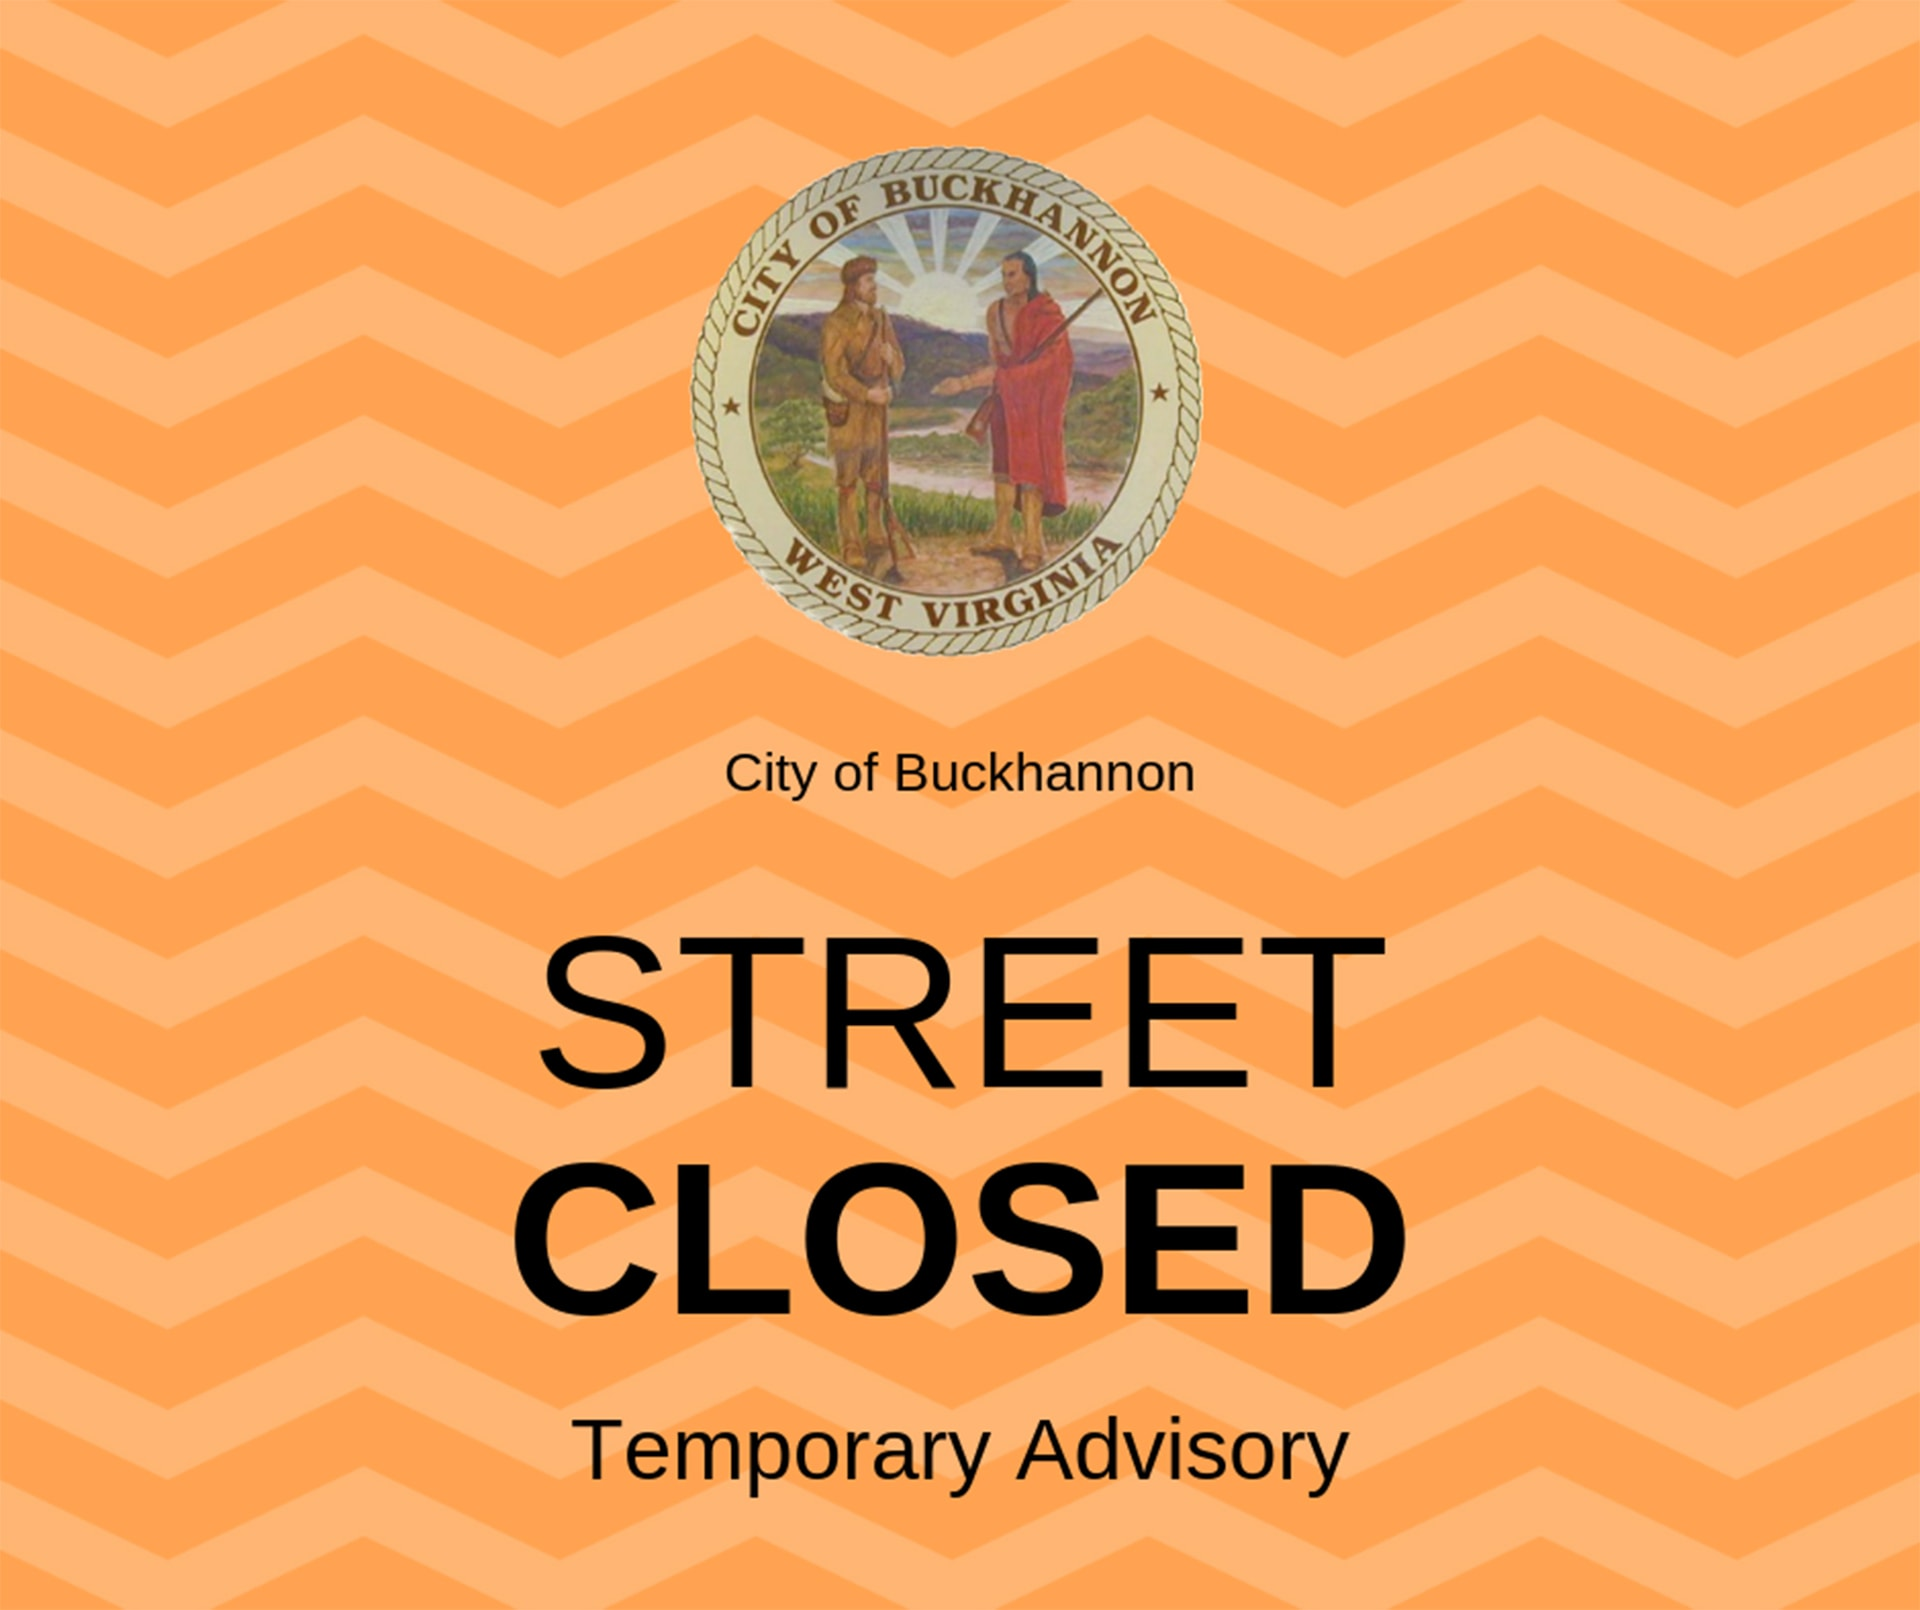 Street closure: High Point Construction to close part of Madison Street on Monday